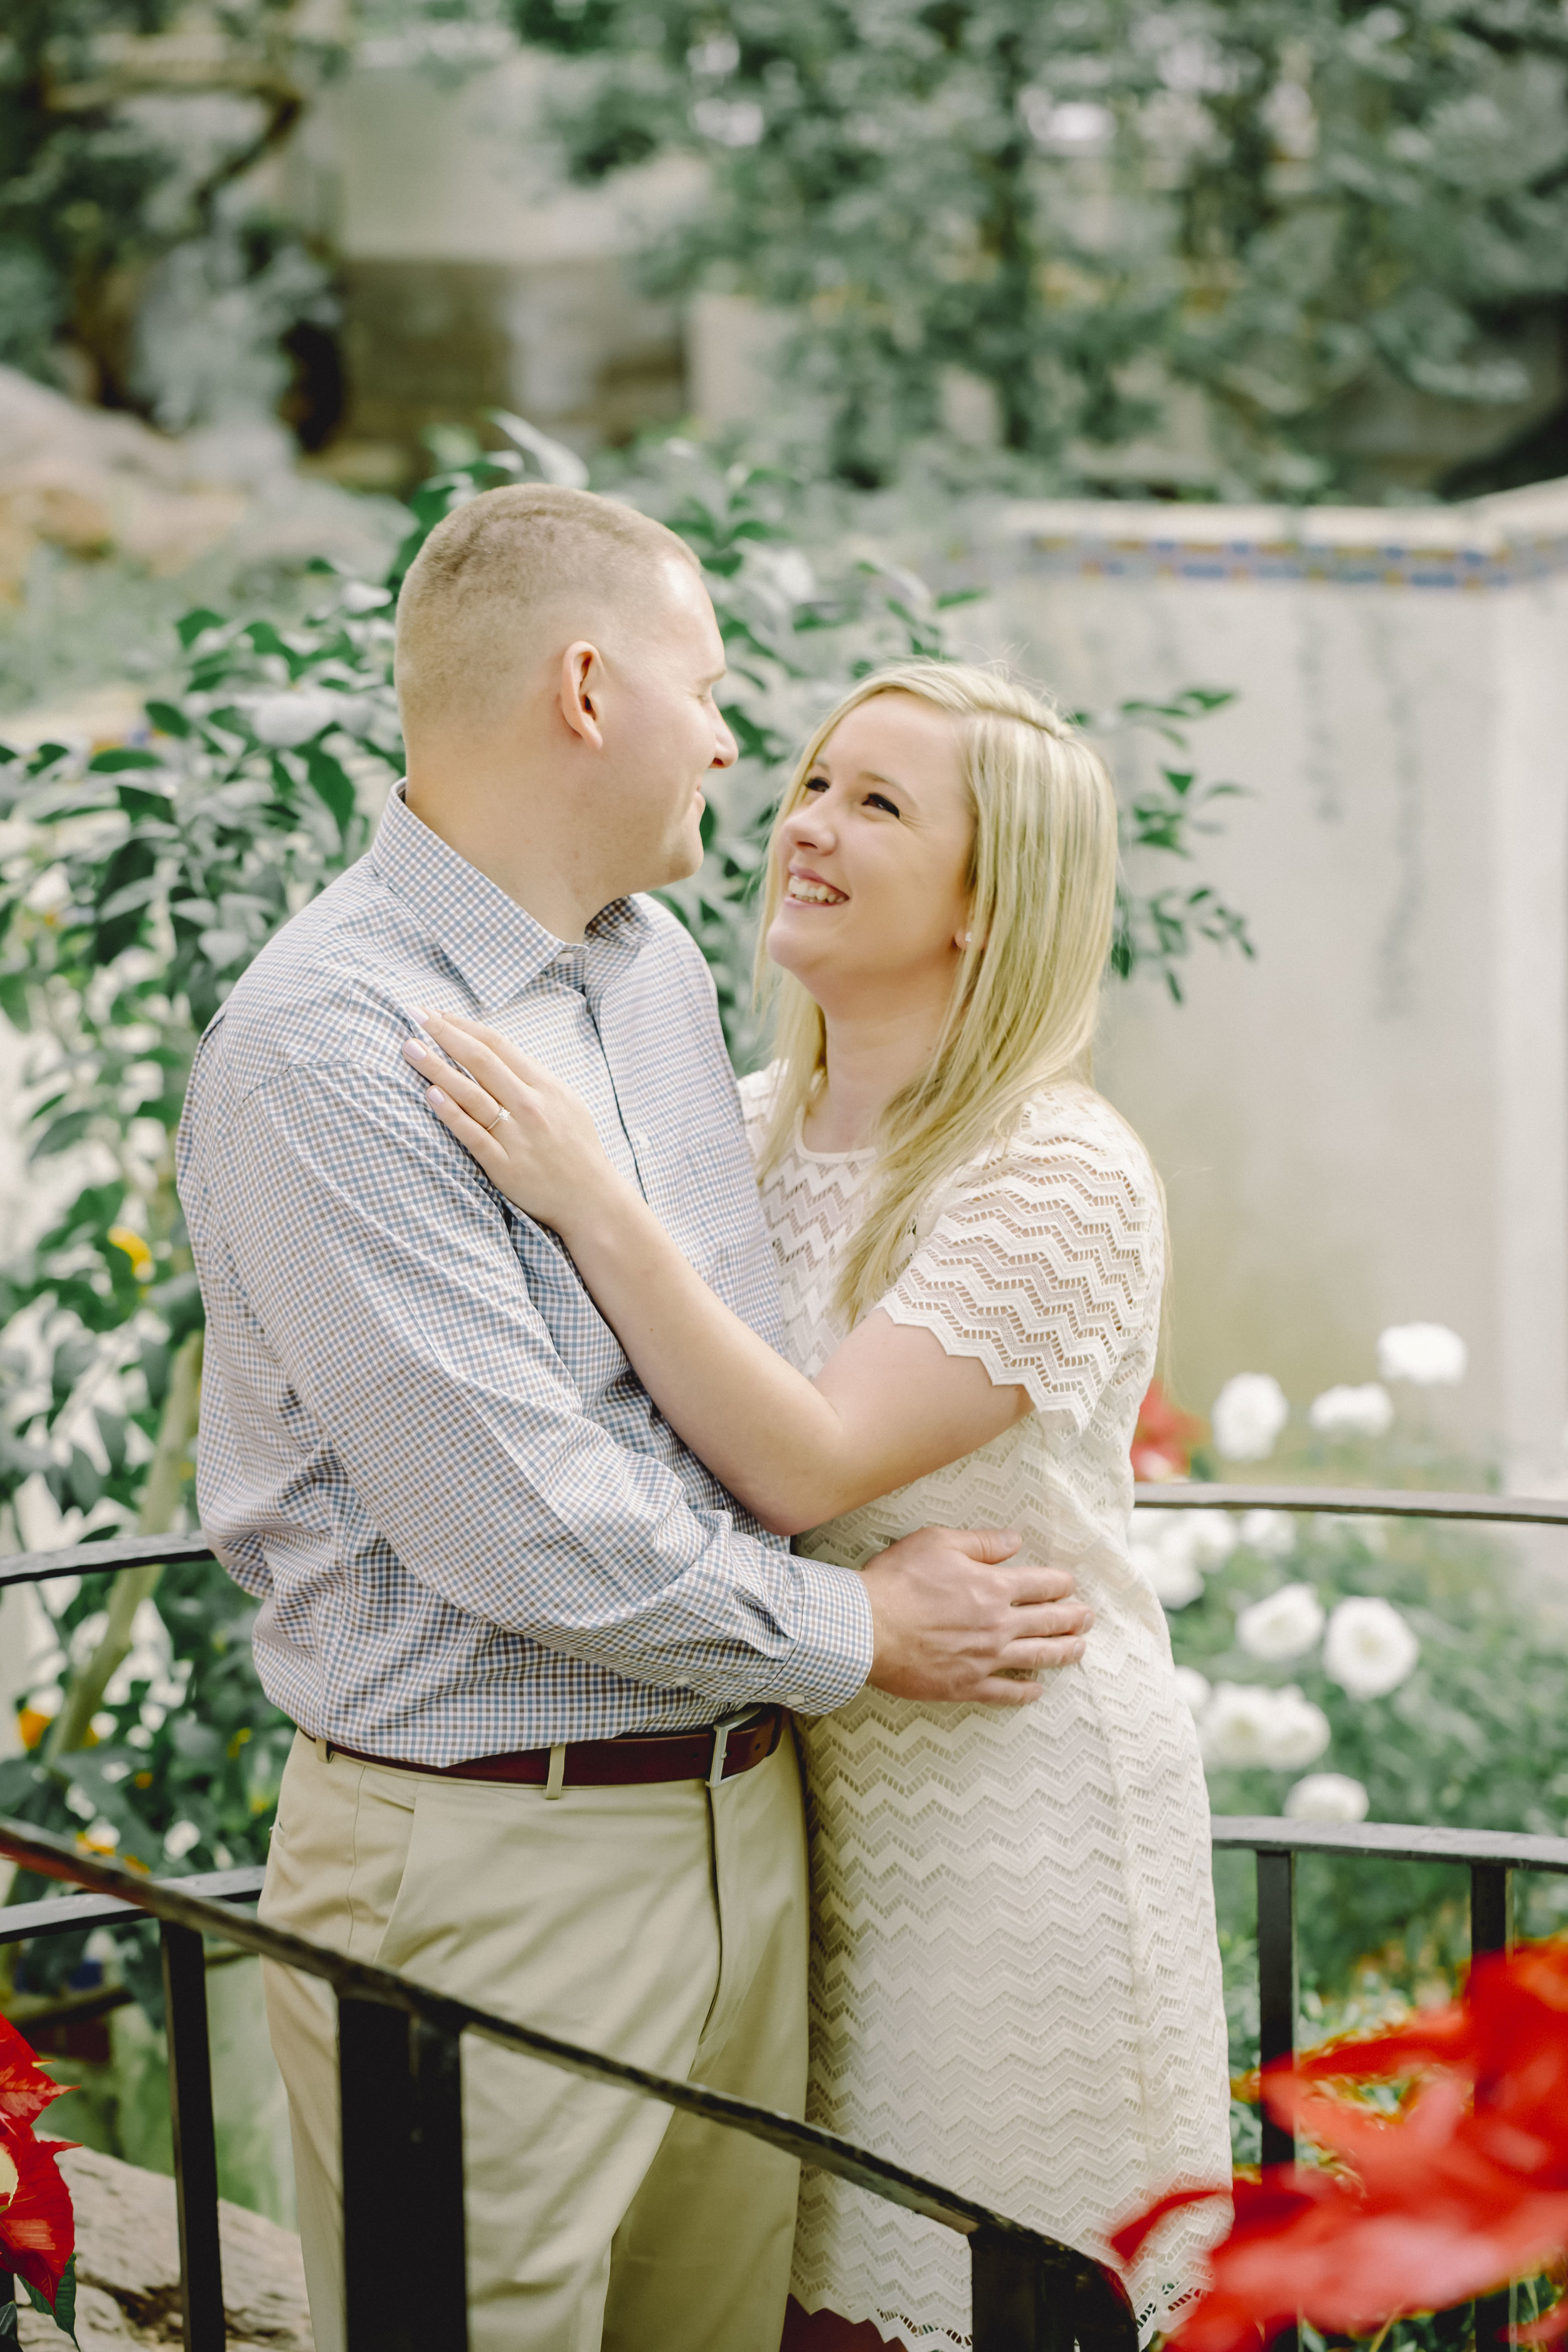 Rebecca_K_Clark_Photography_Engagement_Gallery_Web-30.JPG